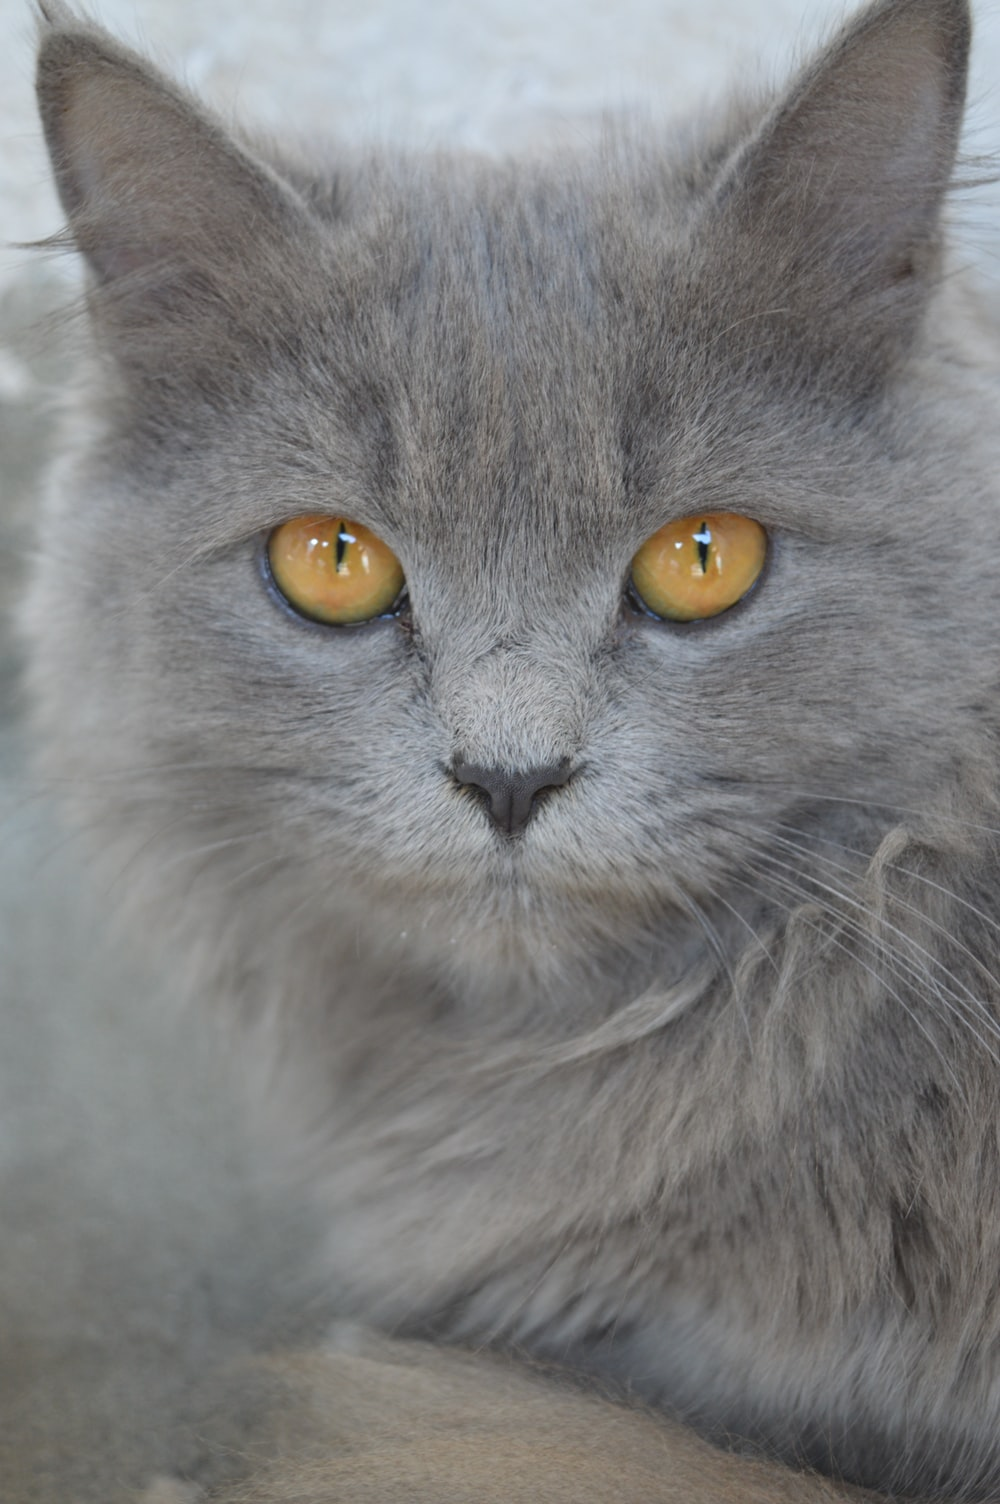 gray cat in close up photography